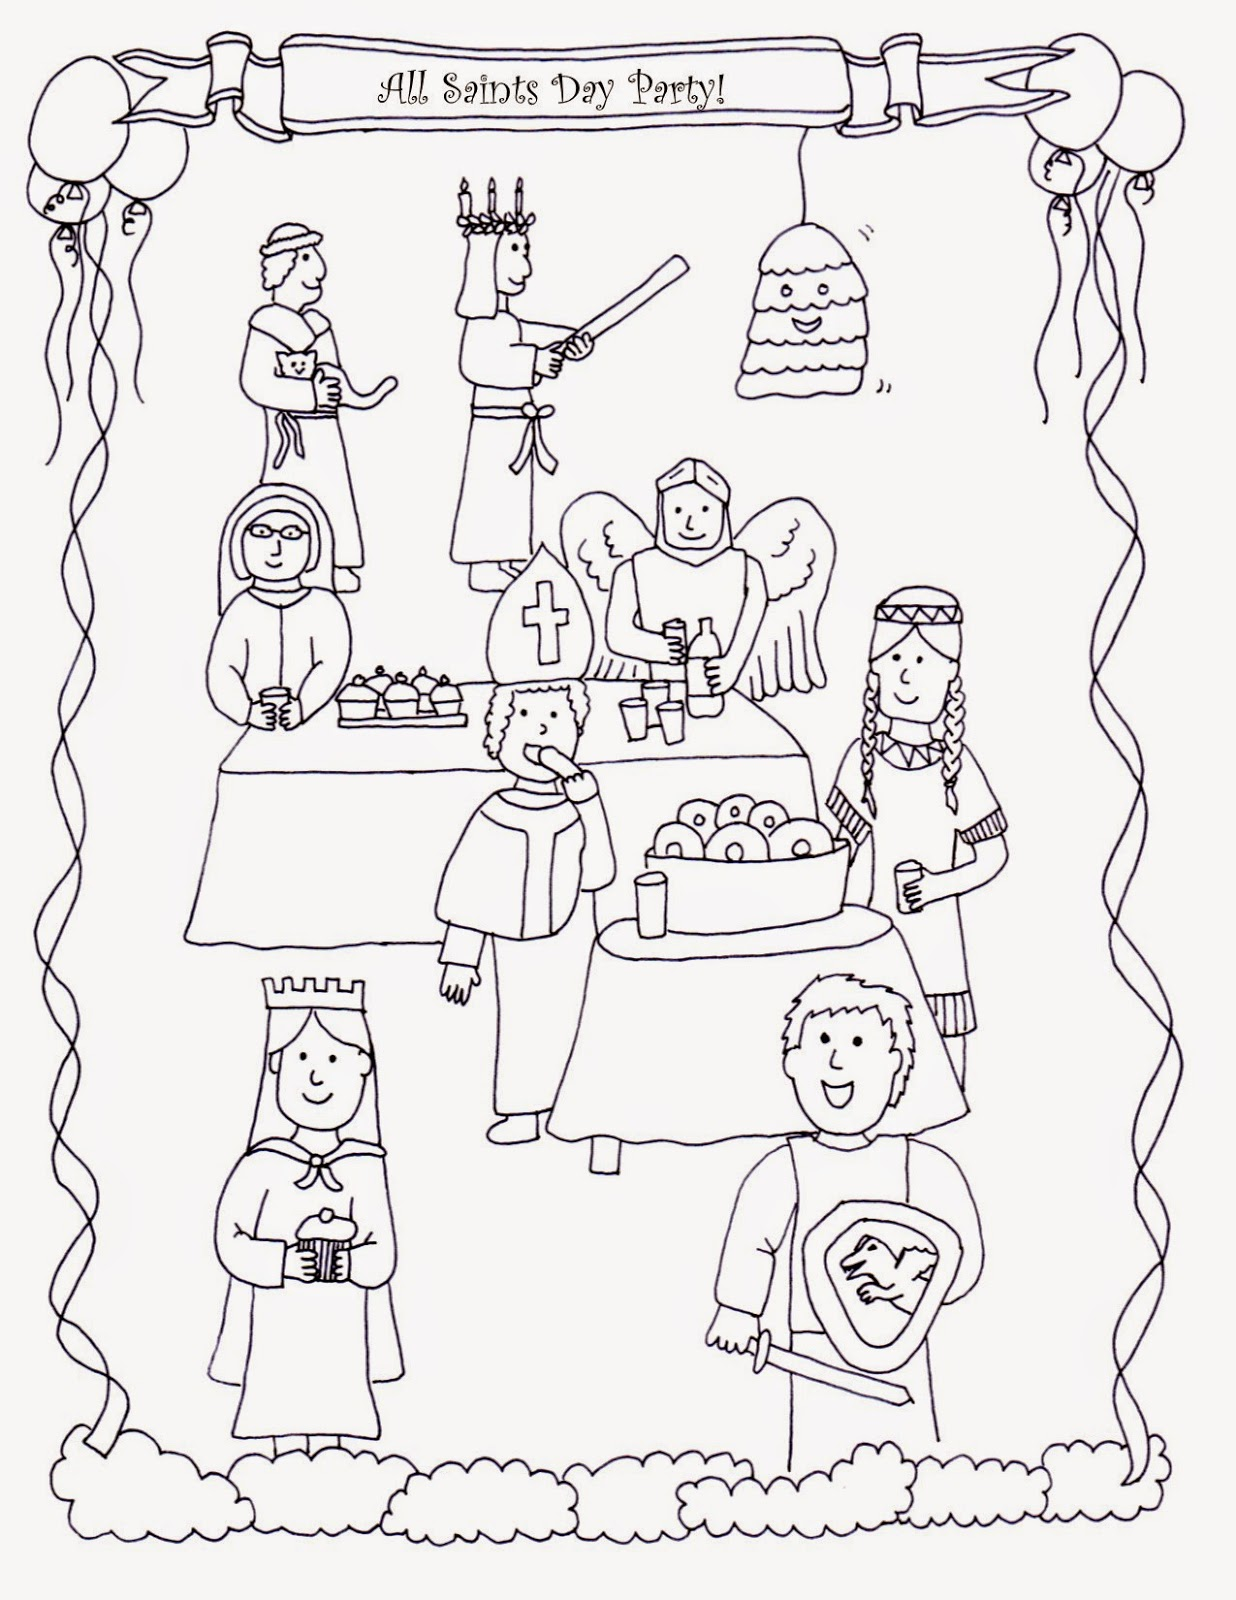 catholic all saints coloring pages - photo#21